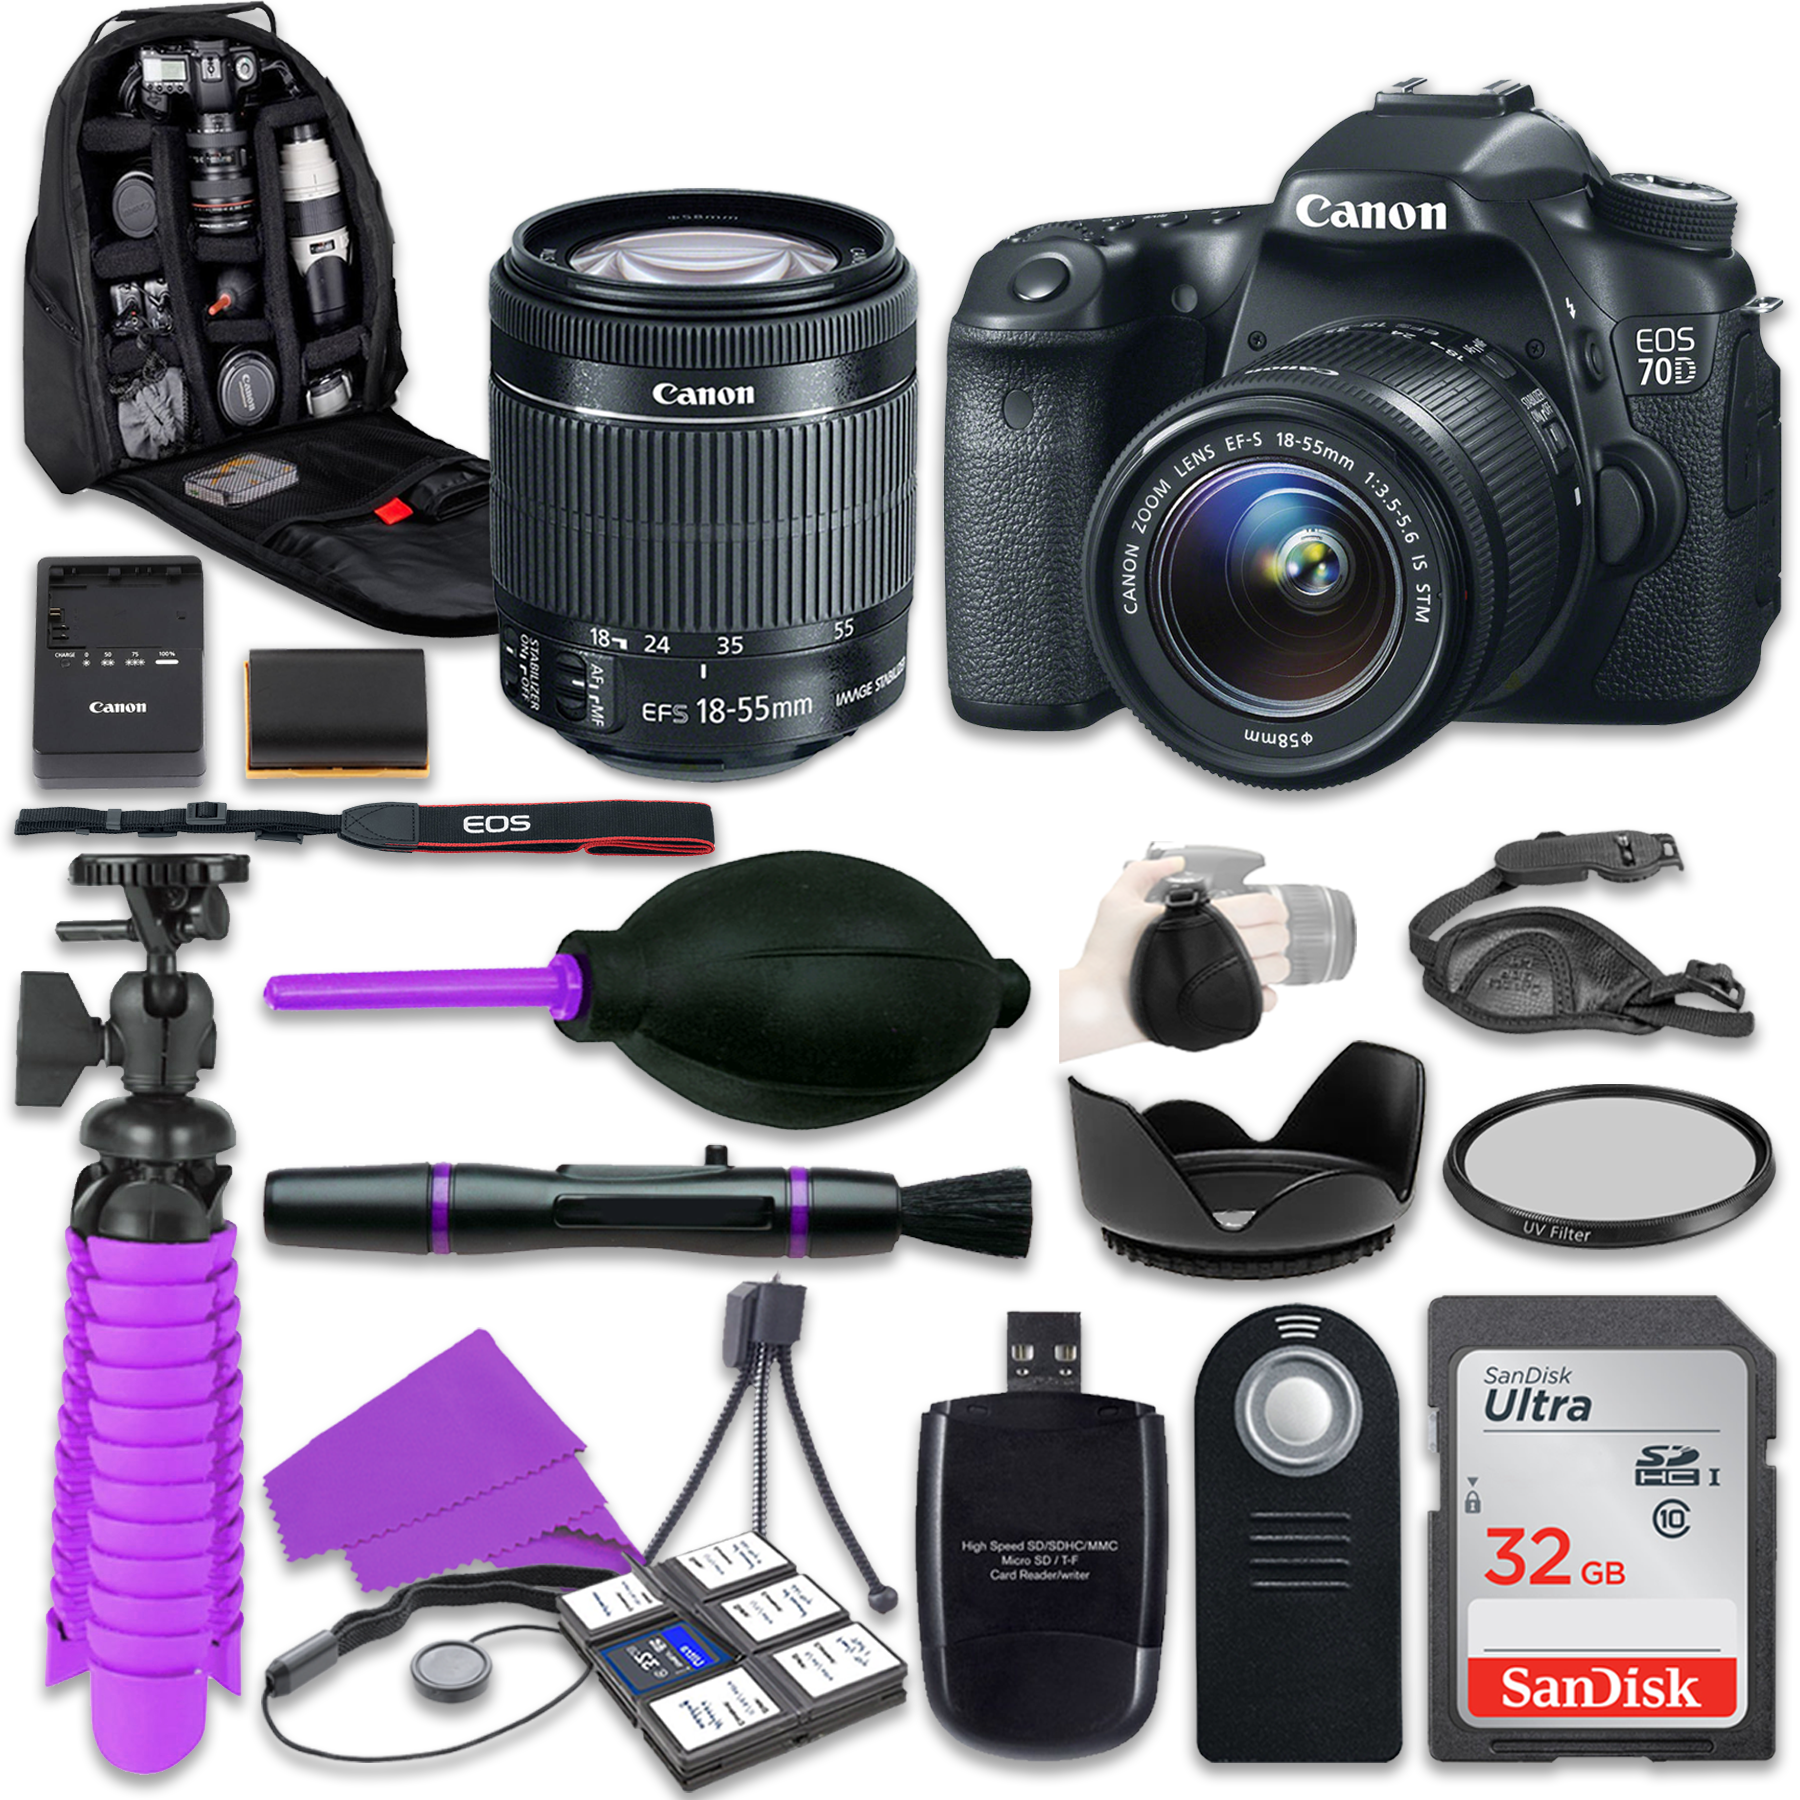 Canon 70D EOS DSLR Camera with Canon 18-55mm IS STM Lens,...